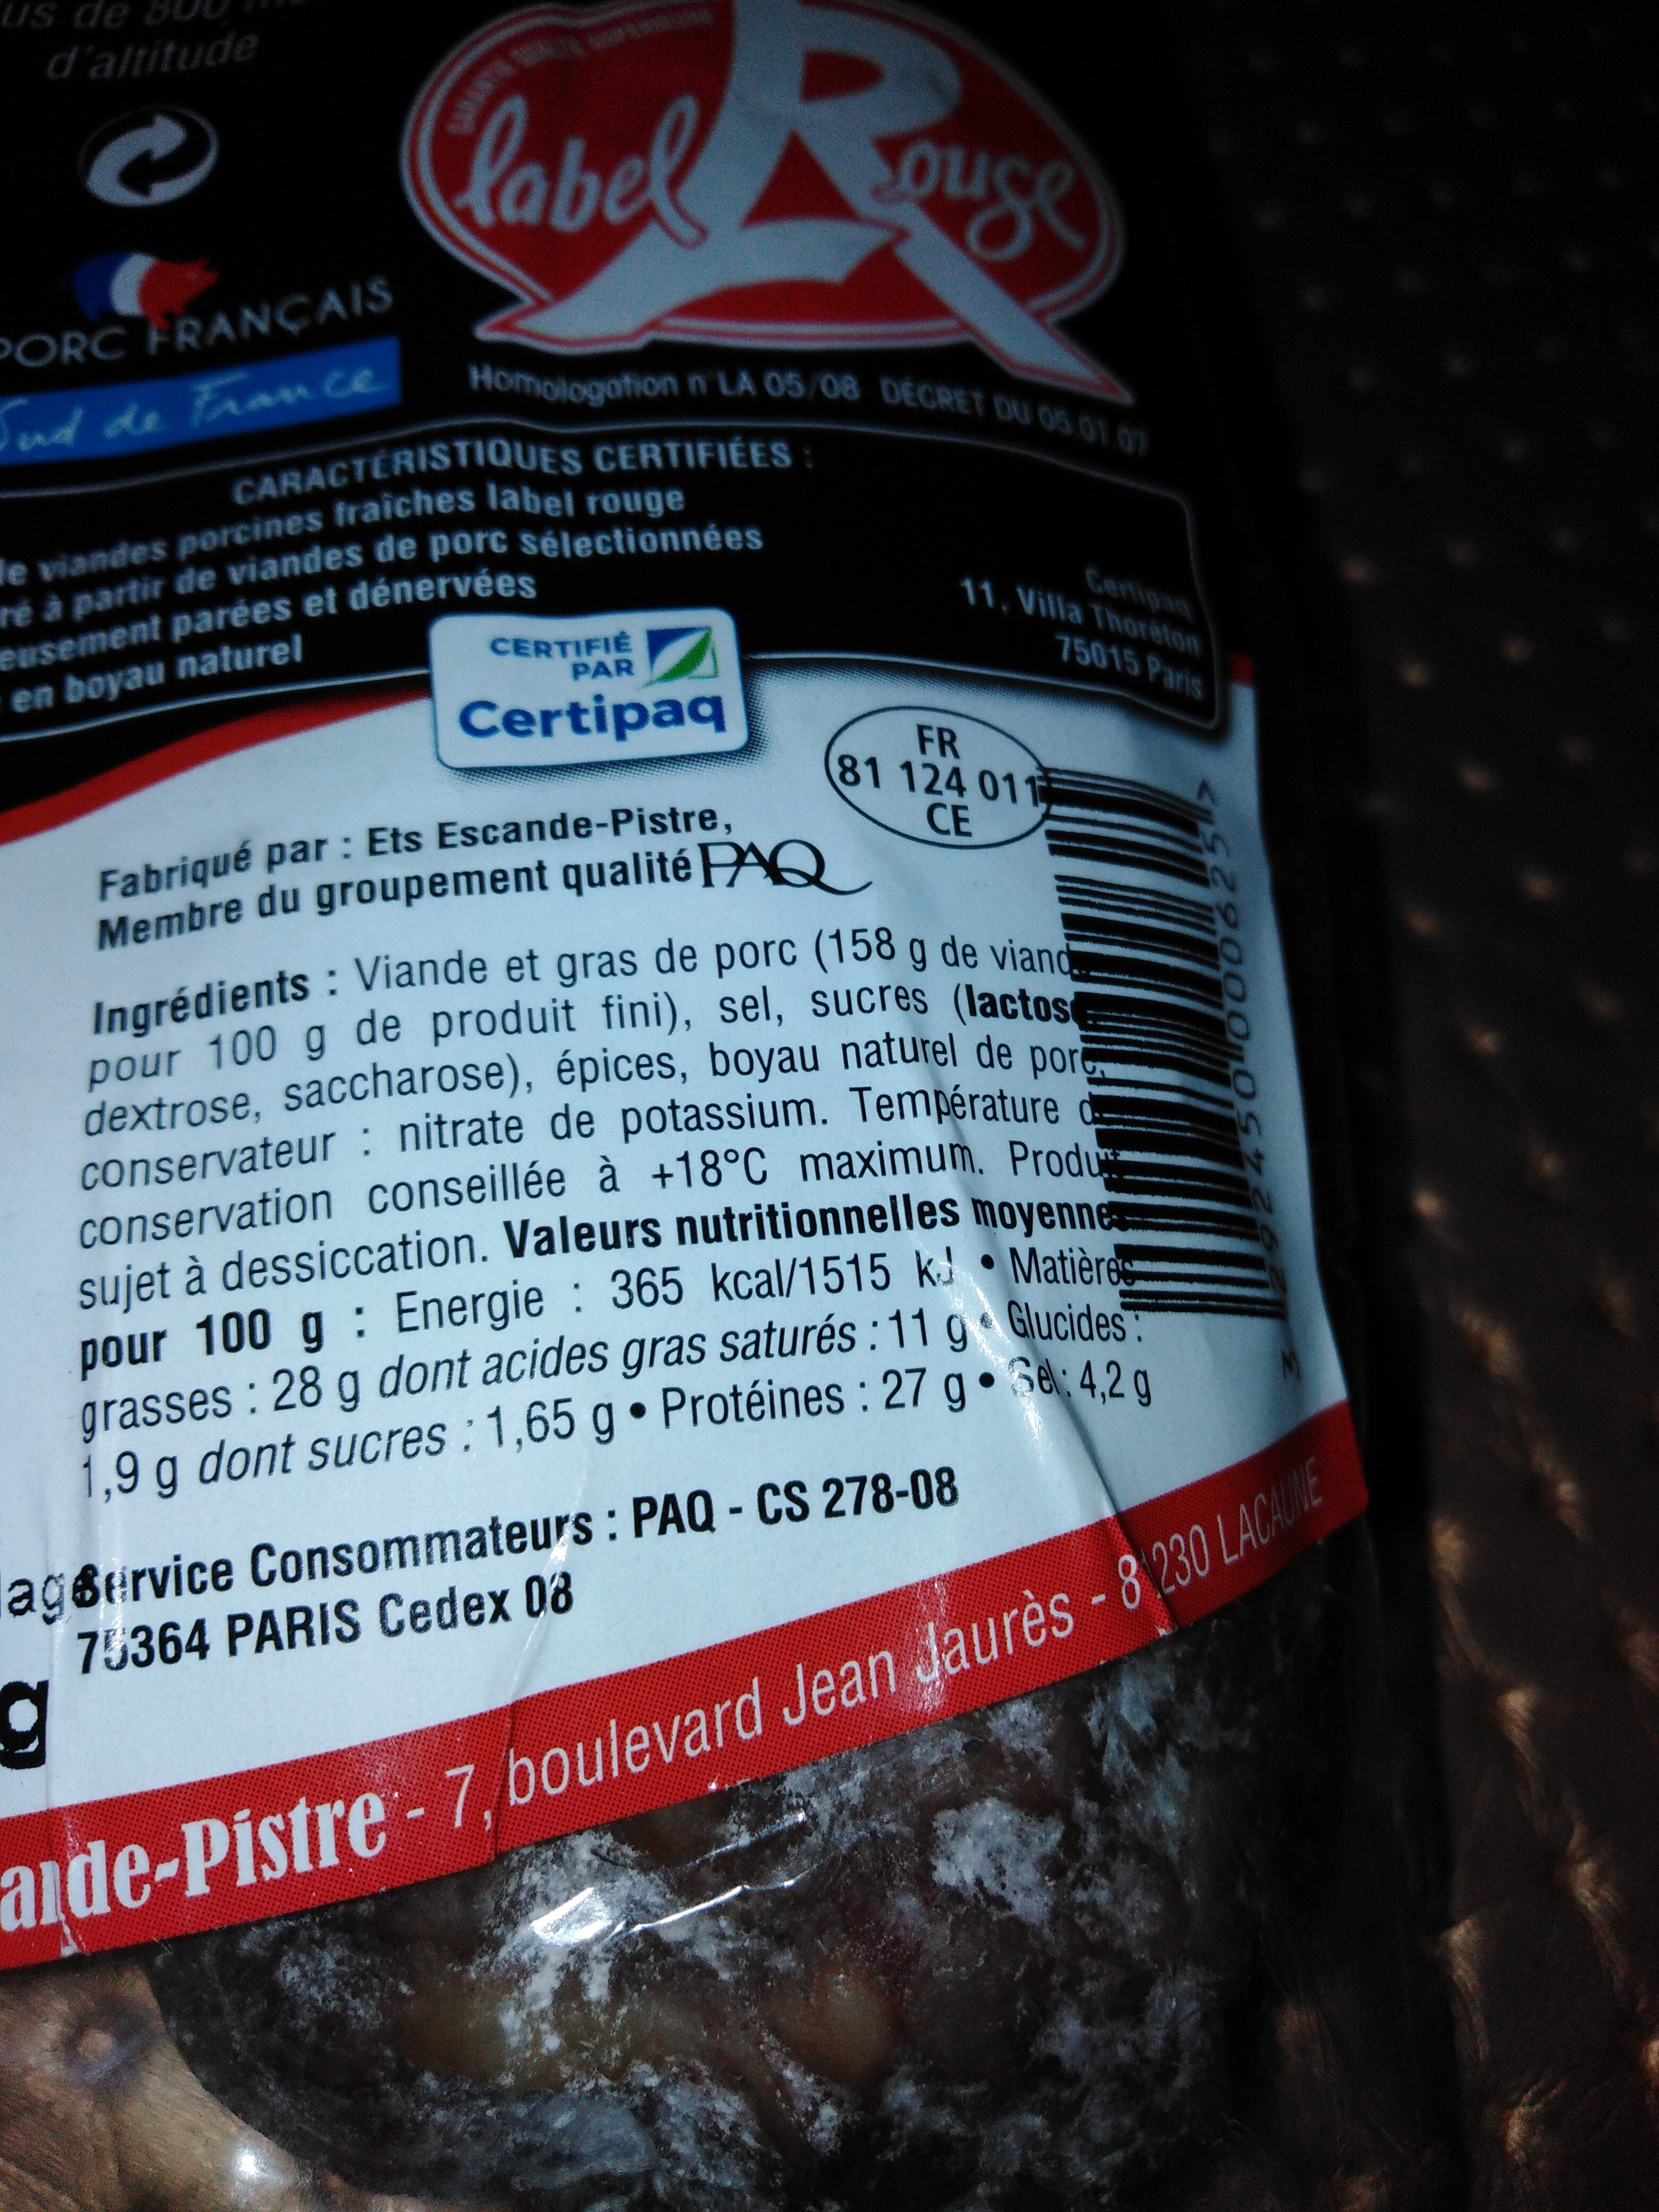 Saucisson des montagnes label rouge - Nutrition facts